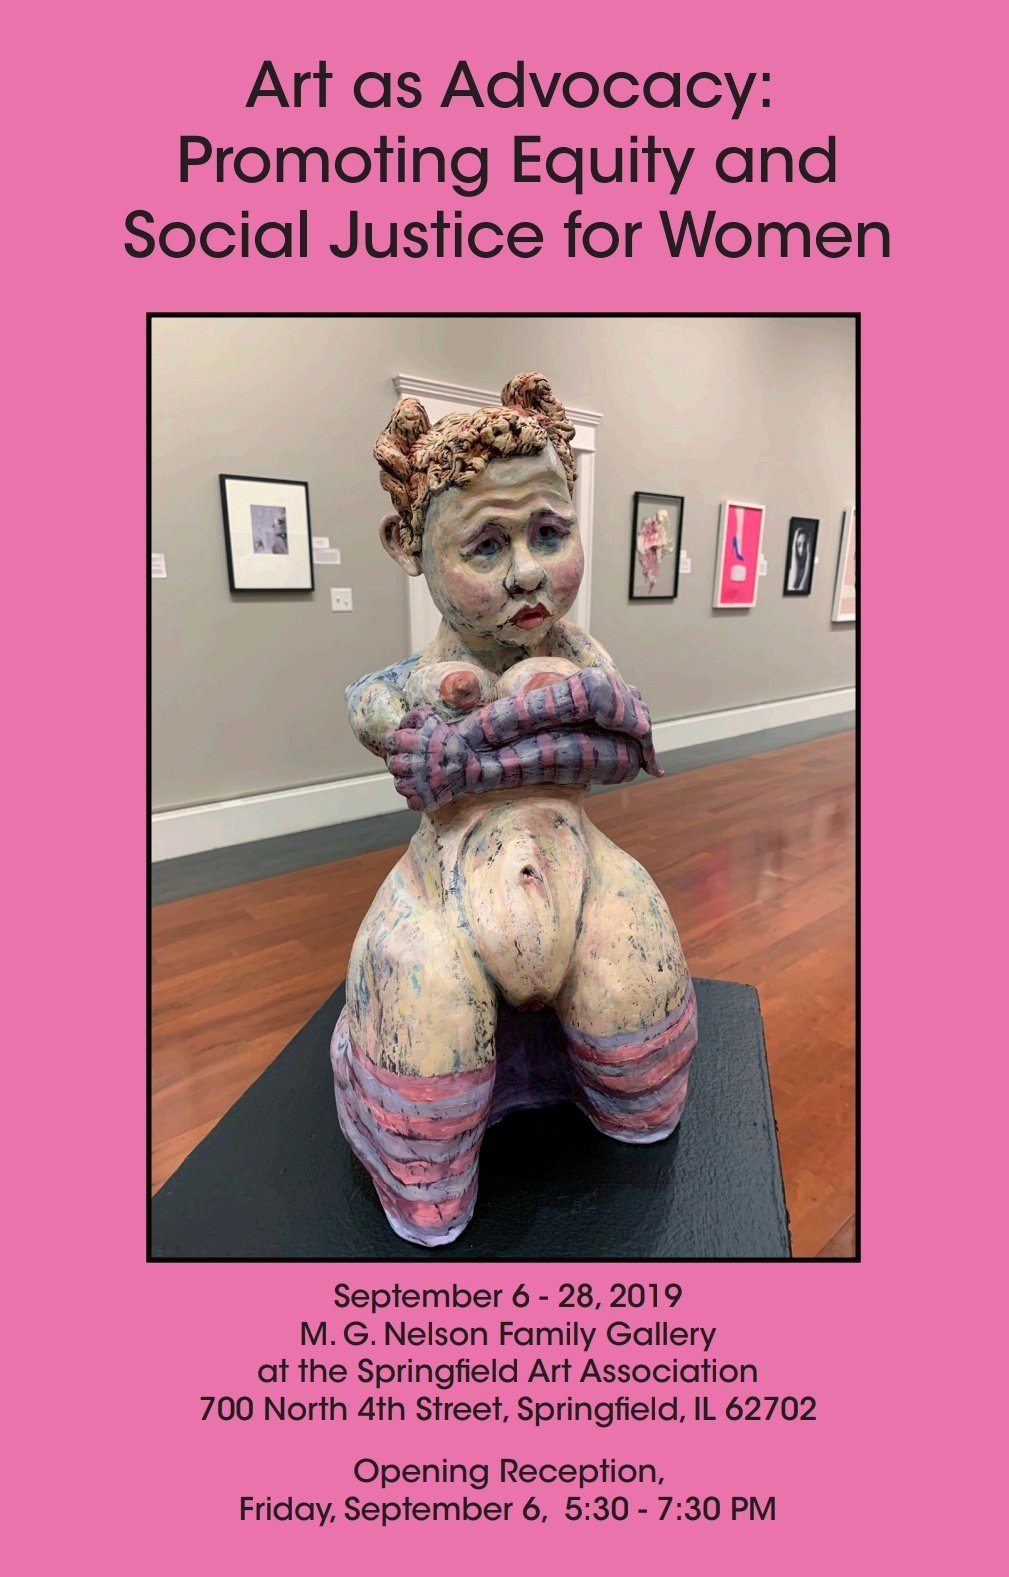 A flyer with a pink background, showing a sculpture of a woman, made out of clay, very emotive, with large thighs and her breasts pushed up under her arms. The show is